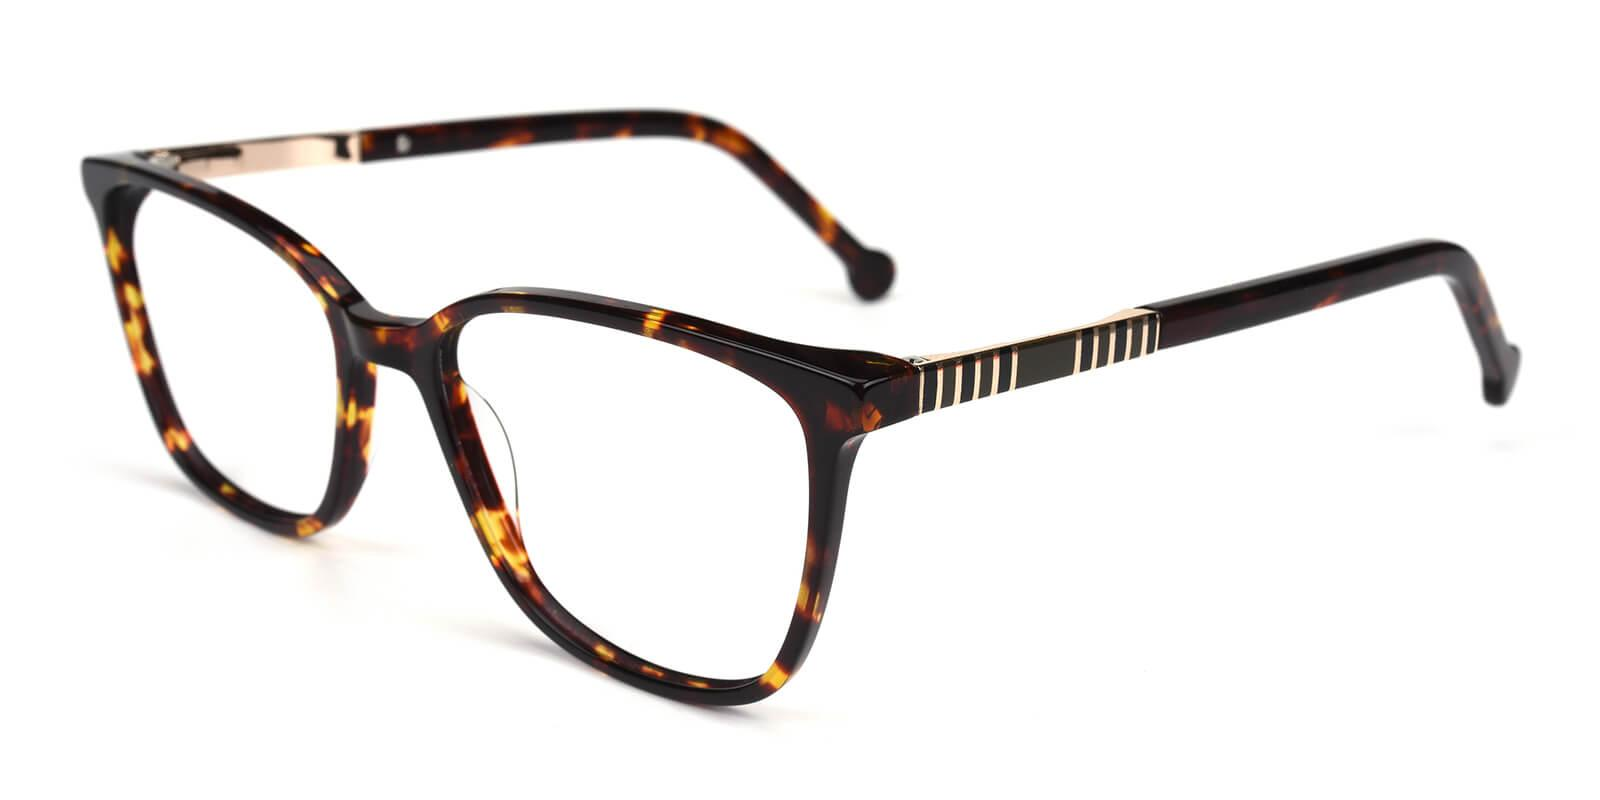 Ethan-Tortoise-Square-Acetate-Eyeglasses-additional1